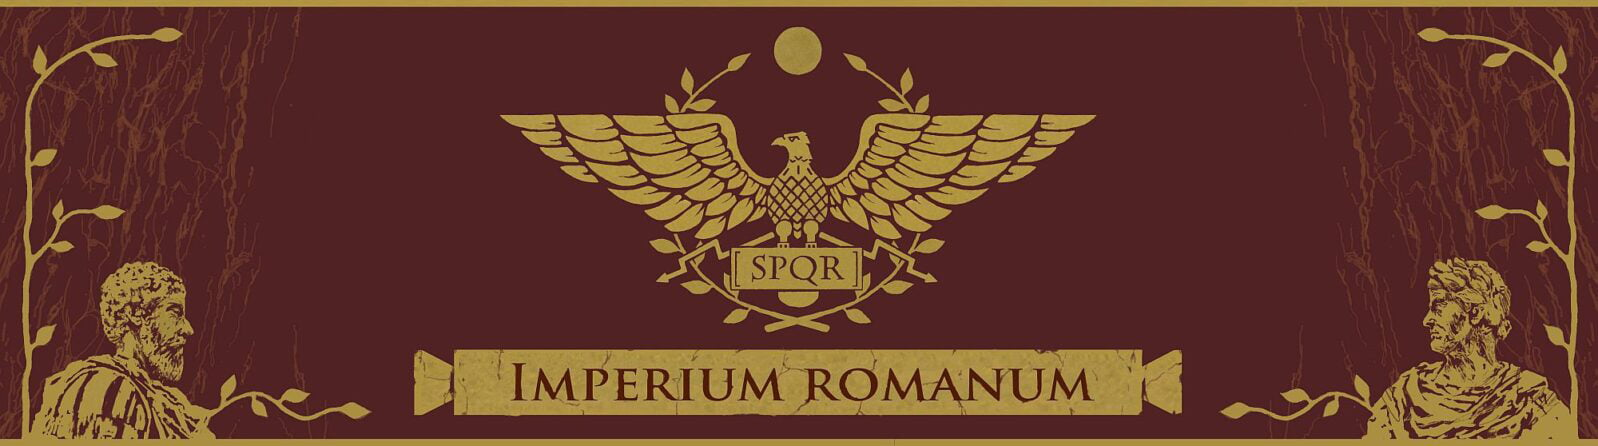 EMPIRE ROMANUM